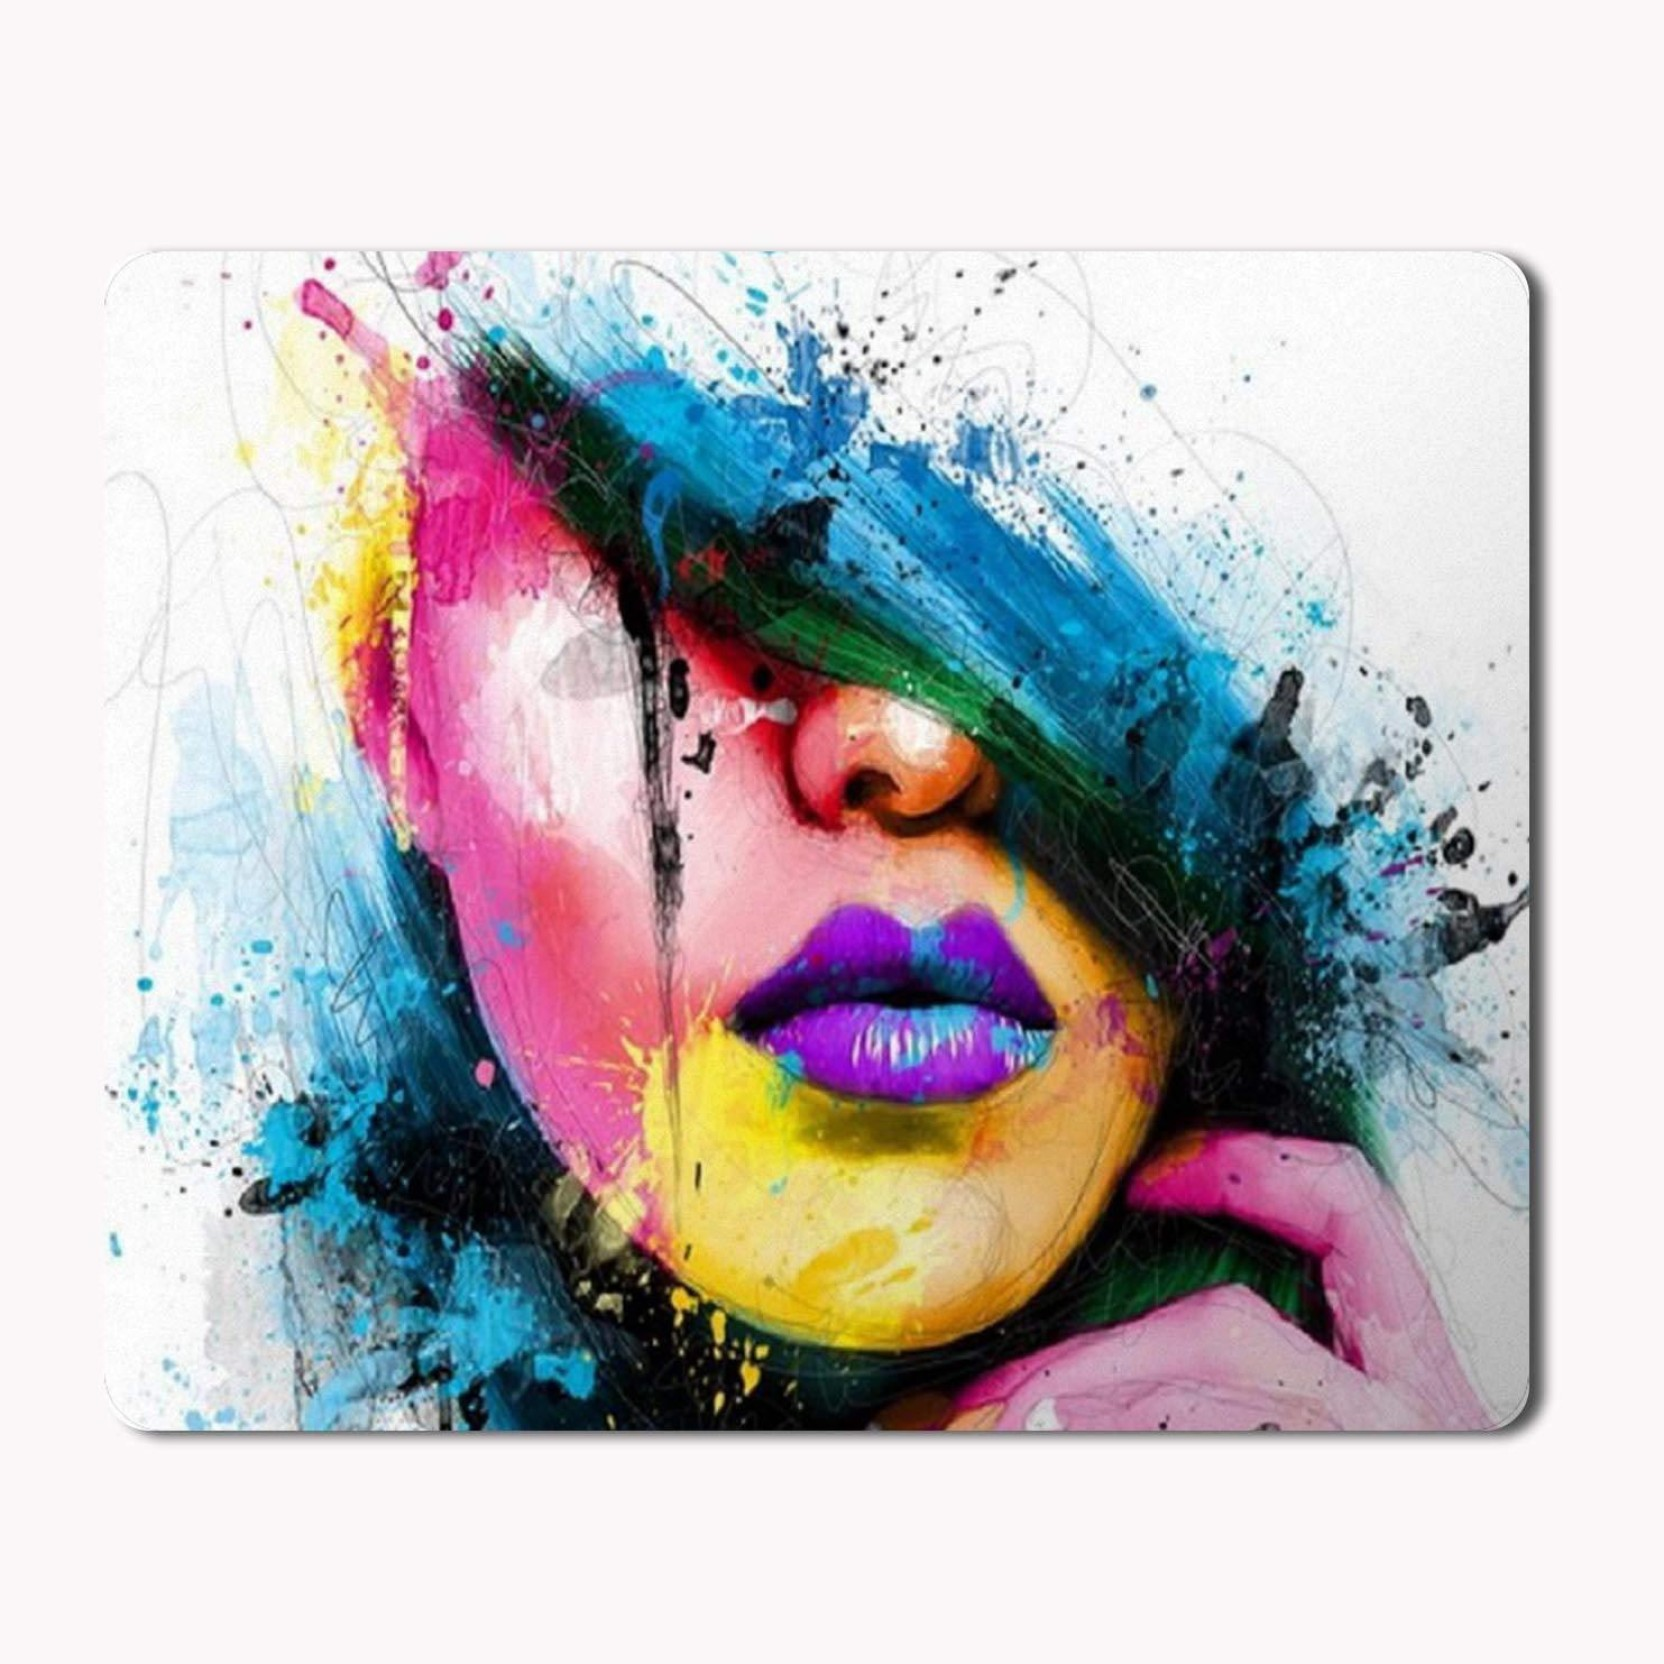 Ikraft Abstract Woman Face Painting Printed Mouse Pad Professional Circuit Board Manufactureronline Quoteprinted Add To Cart